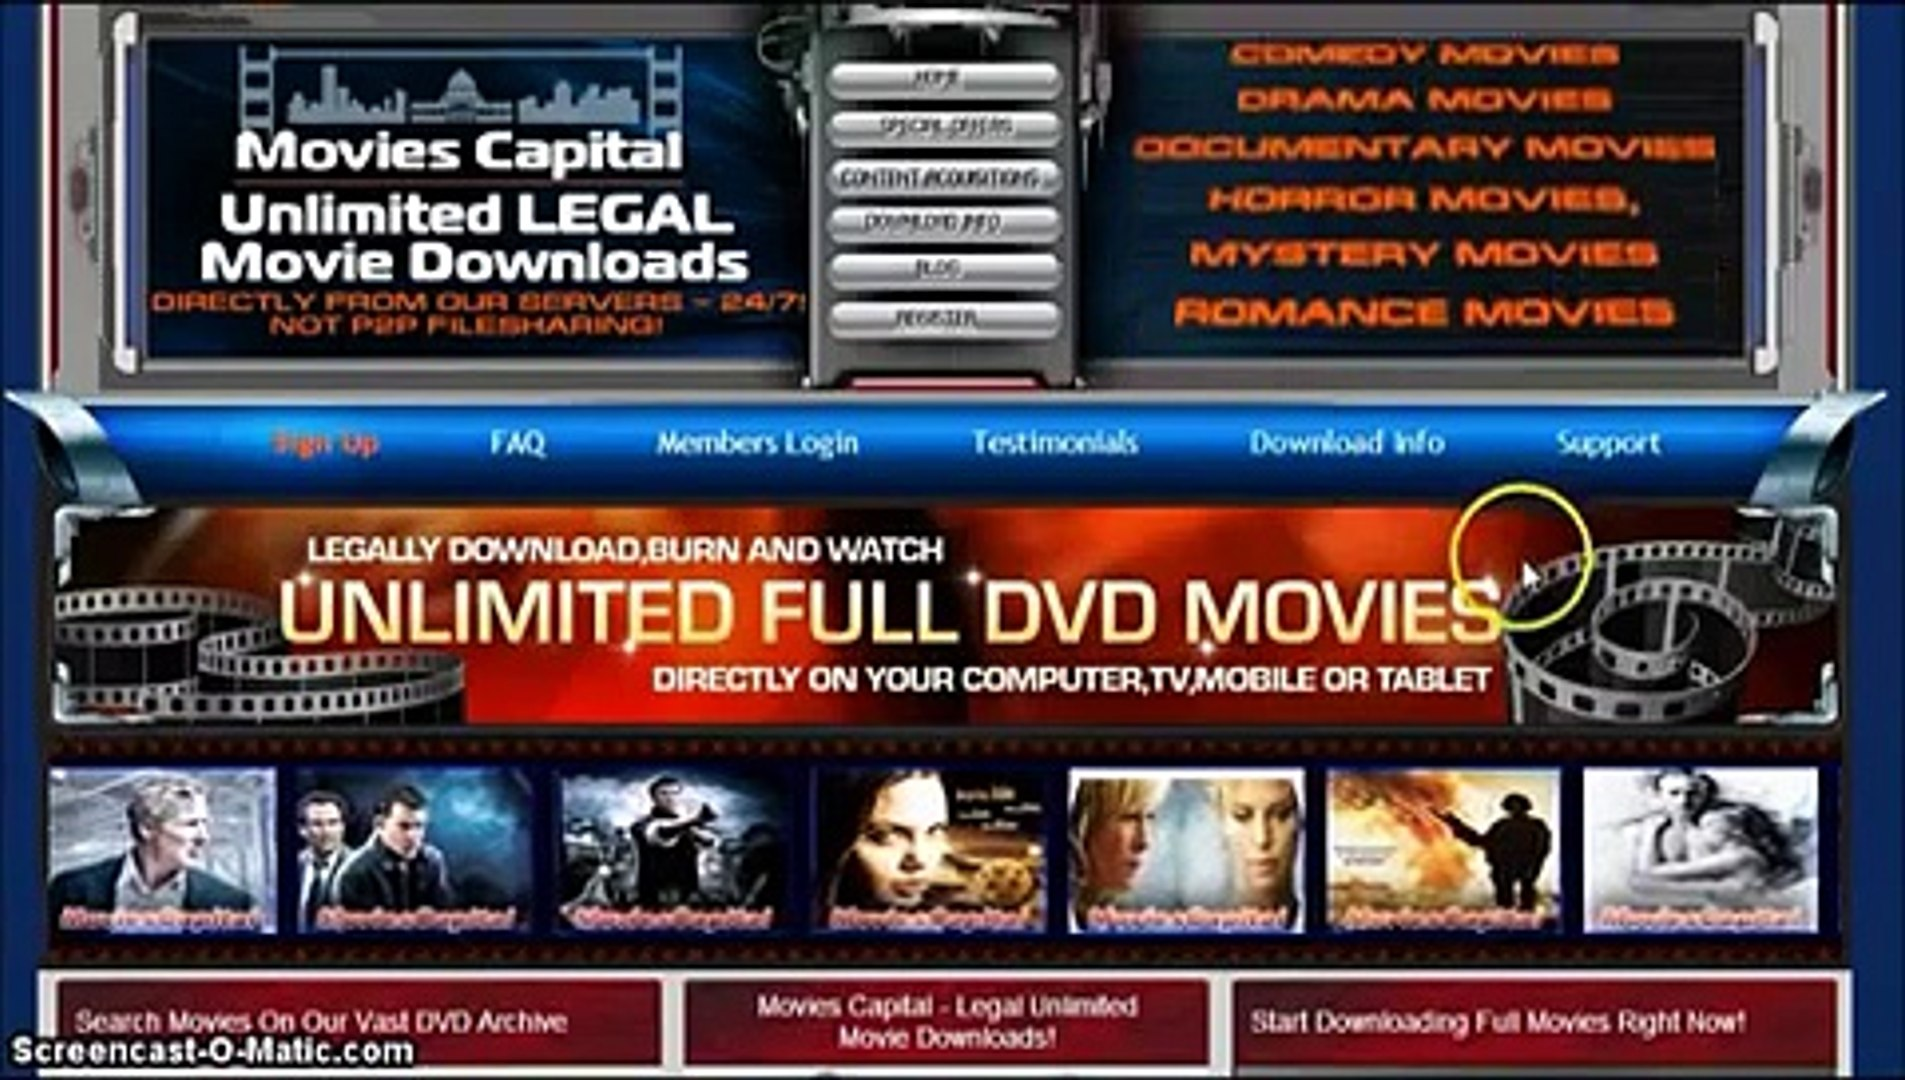 UNLIMITED Download Movies Legal Movies Capital Review - Updated 2014